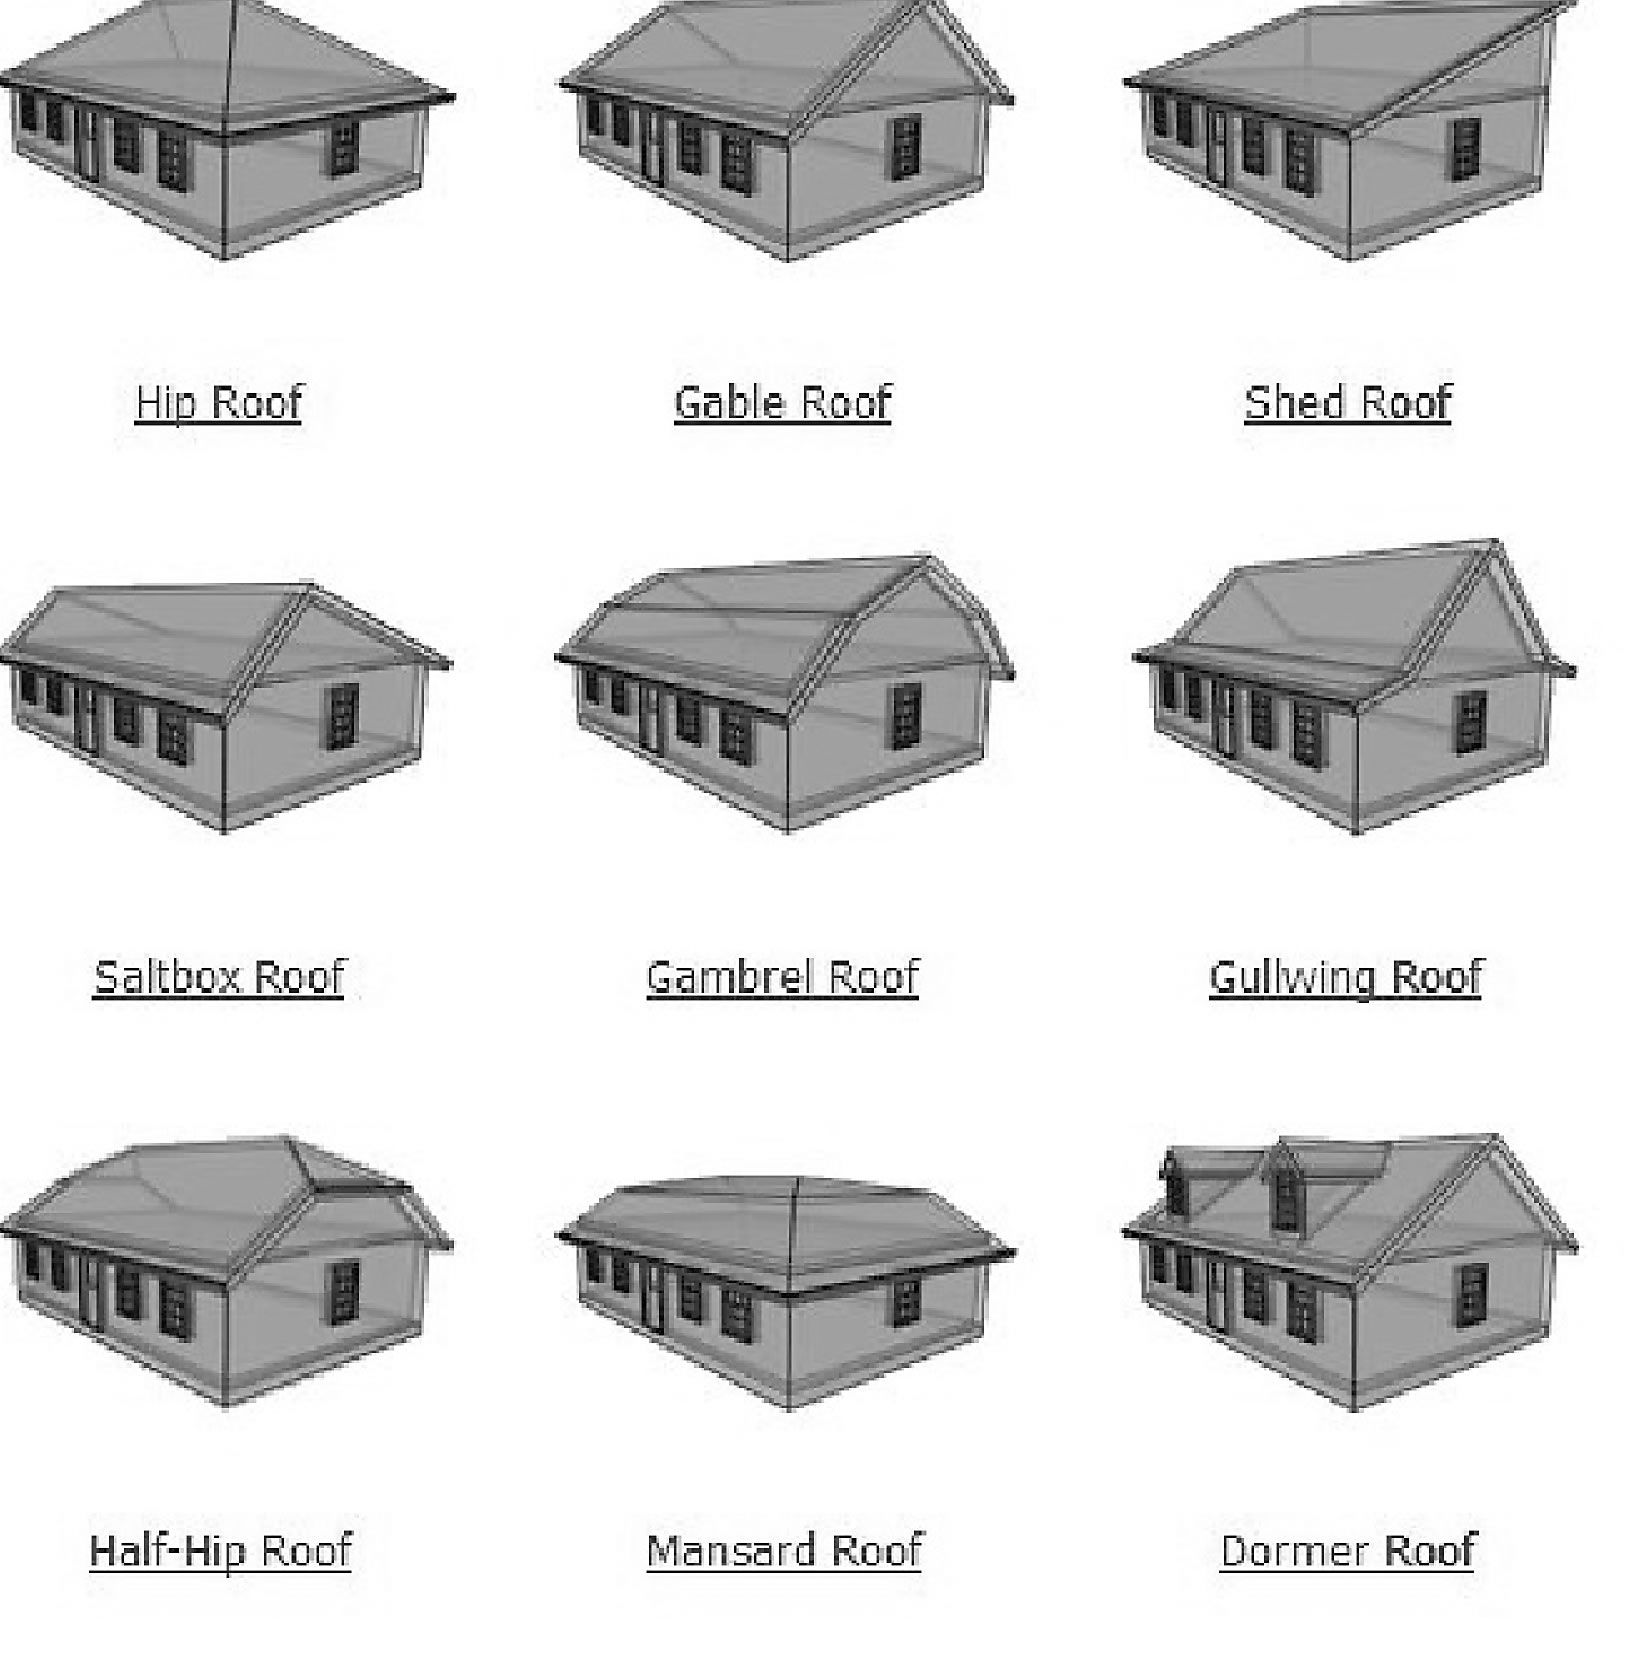 French roof styles roofs and shed dormer roofs they for Main architectural styles